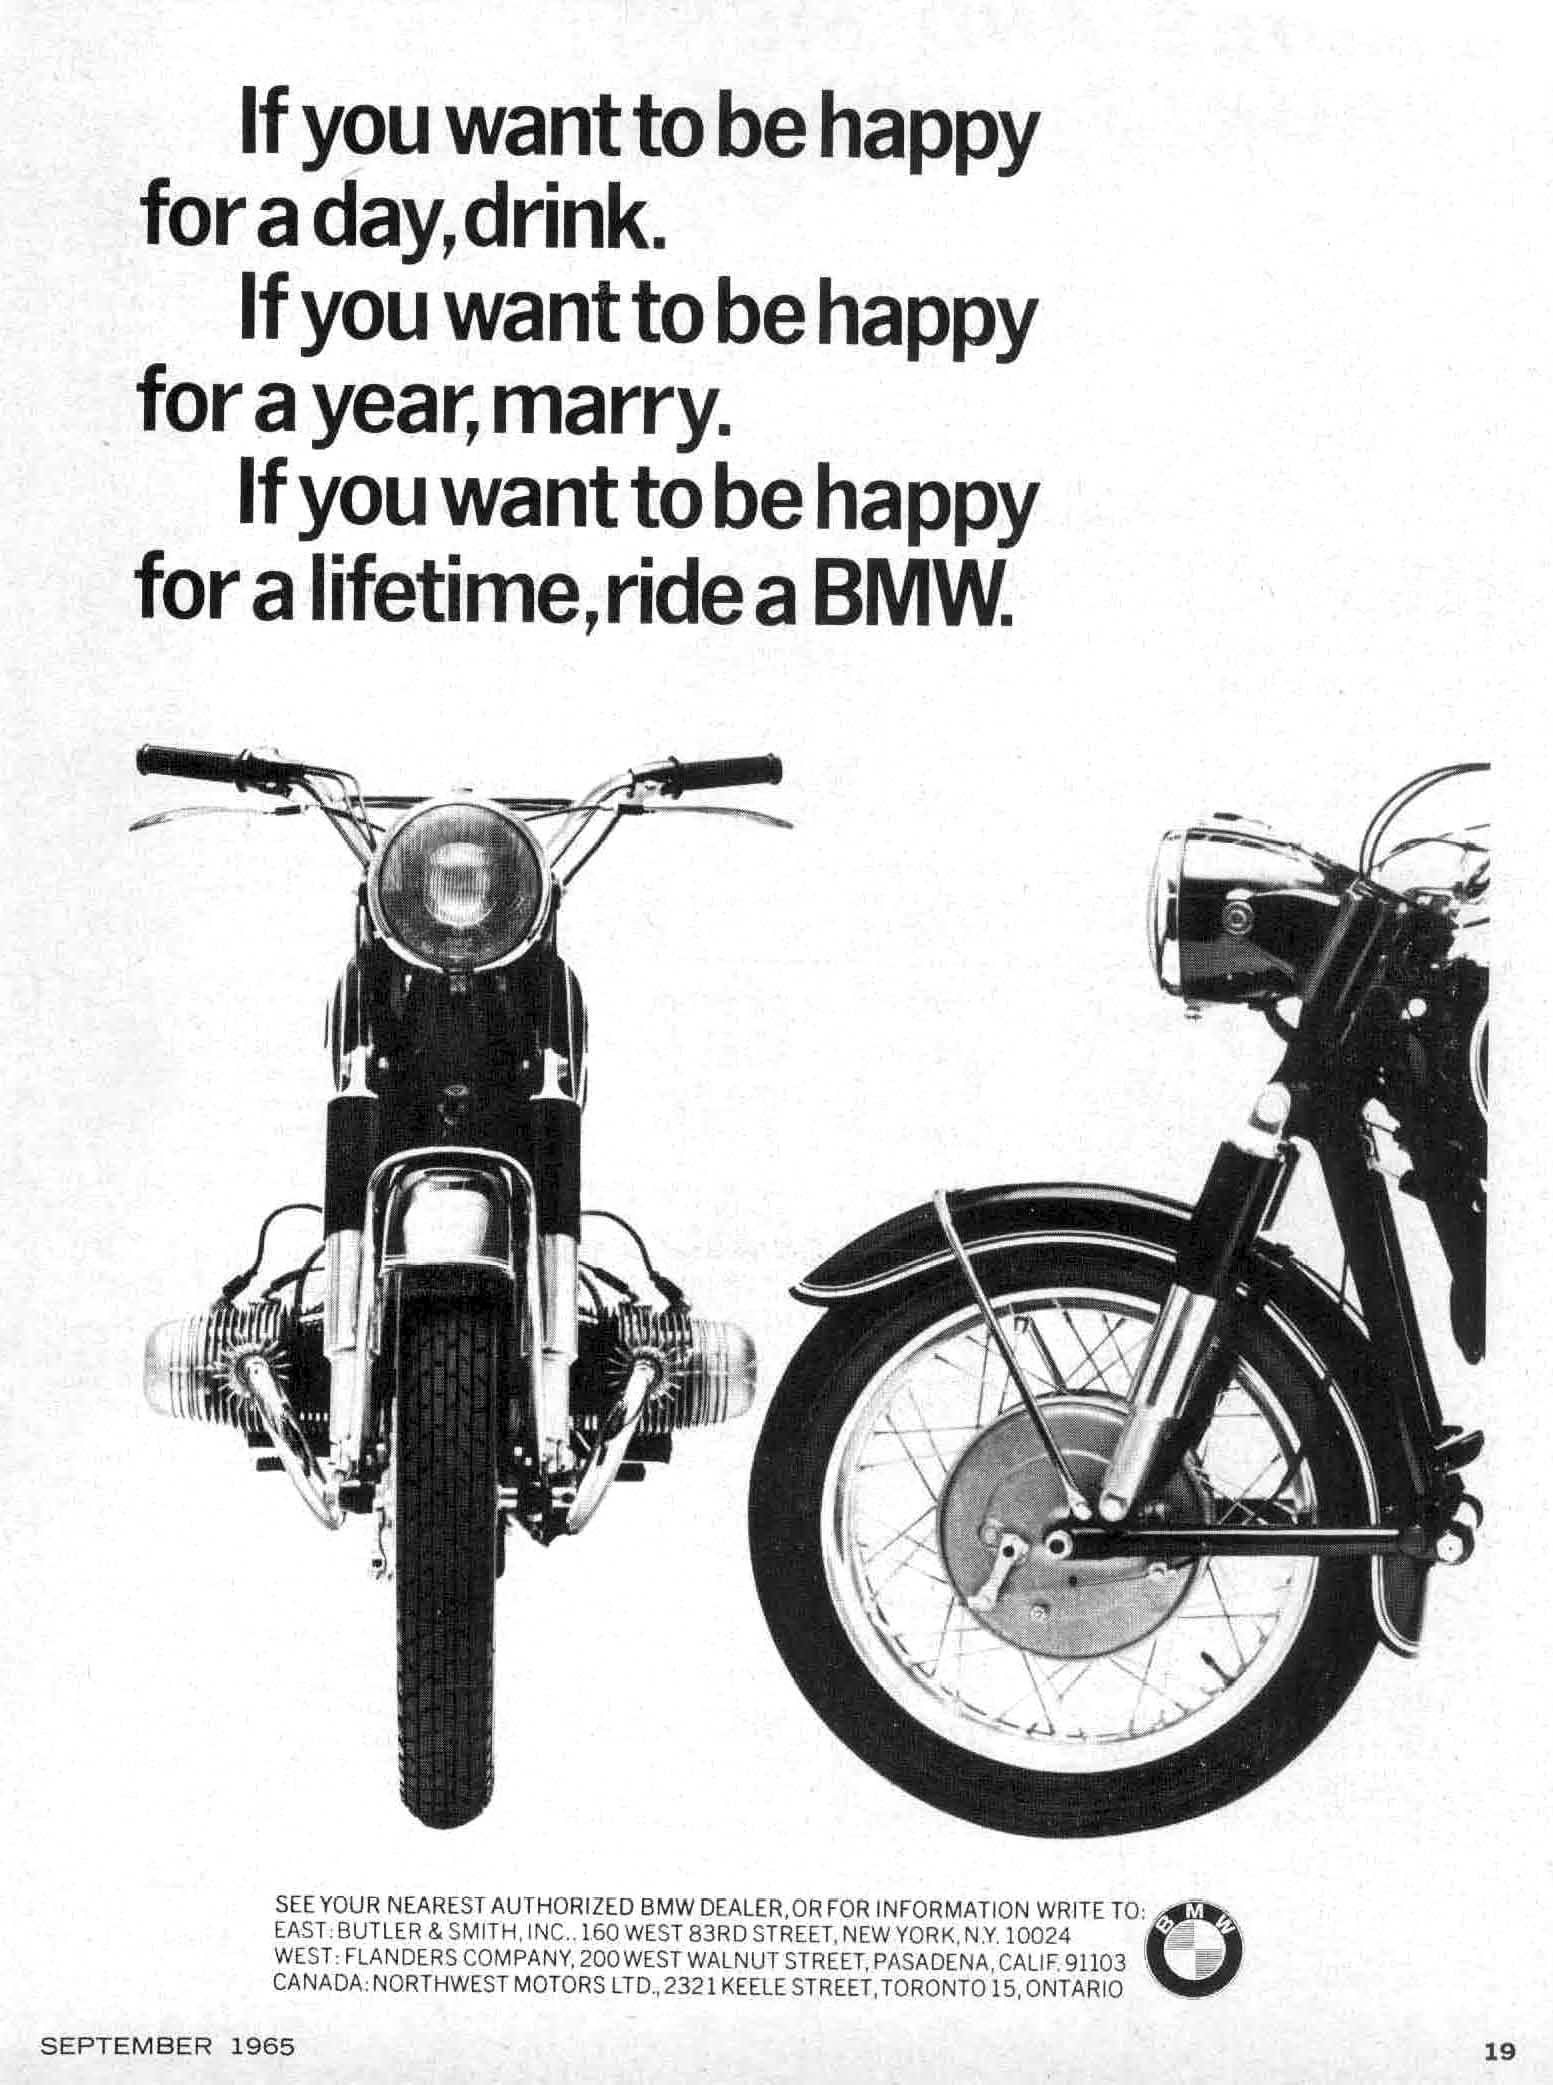 hight resolution of here is the famous 1965 bmw motorcycles happy for a lifetime advertisement